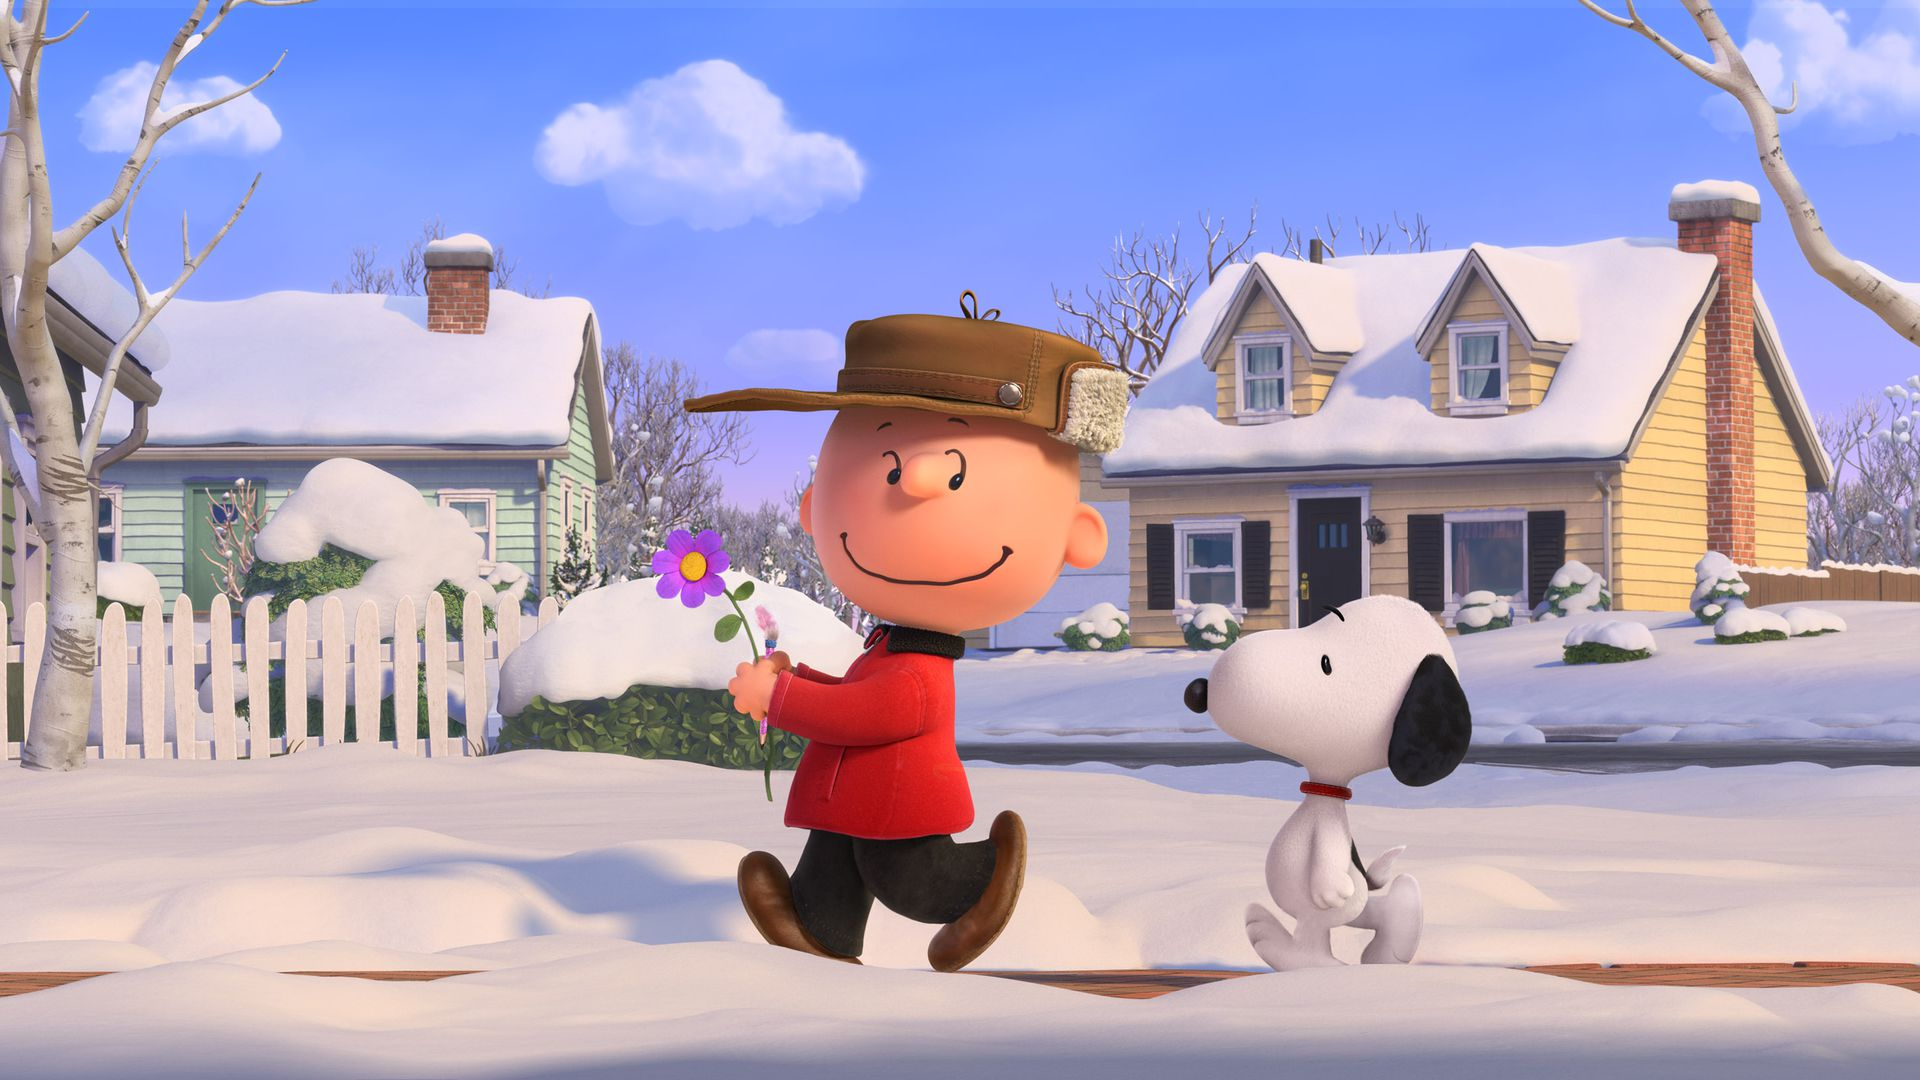 Snoopy ve Charlie Brown Peanuts 13 Kasım'da Sinemalarda